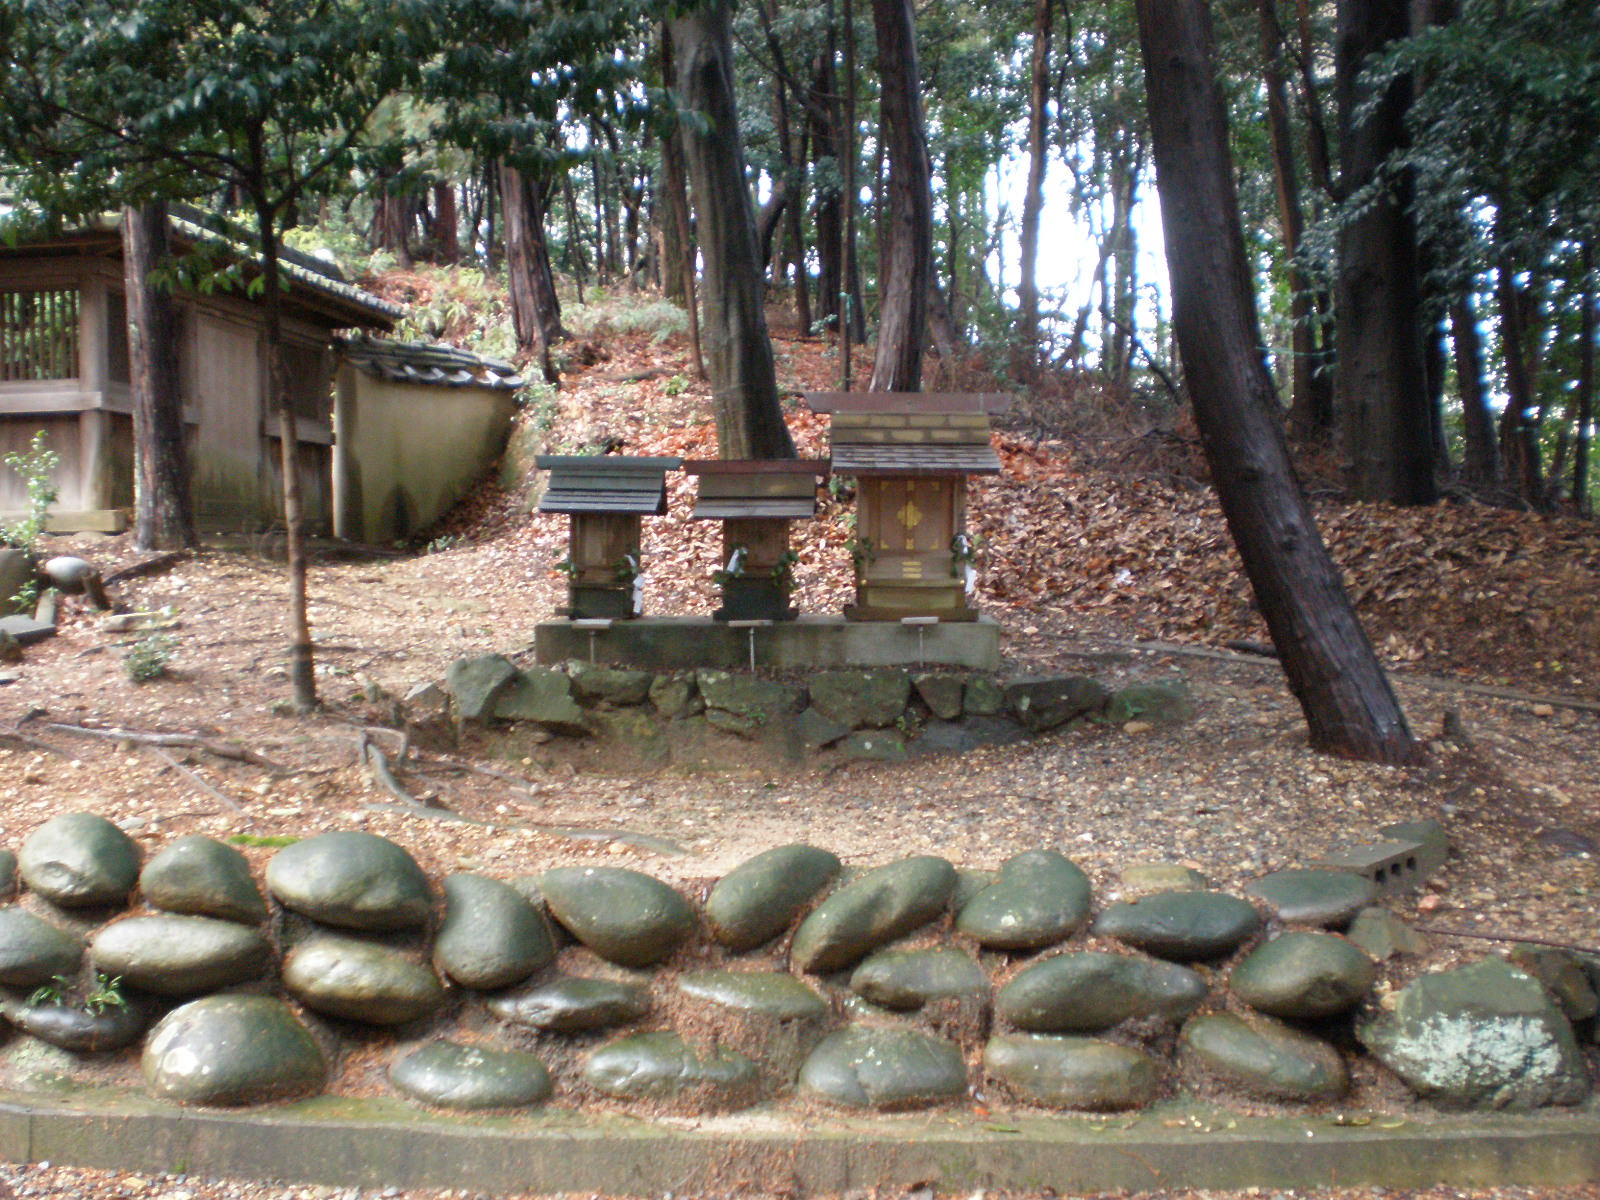 Image 12. 愛知県小牧市の八所神社にある祠 = Three hokora [= miniature Shinto shrines that are houses for kami] on a country road in the Hachi-sho Shrine Komaki, Aichi Prefecture, Japan. Photo by KKPCW